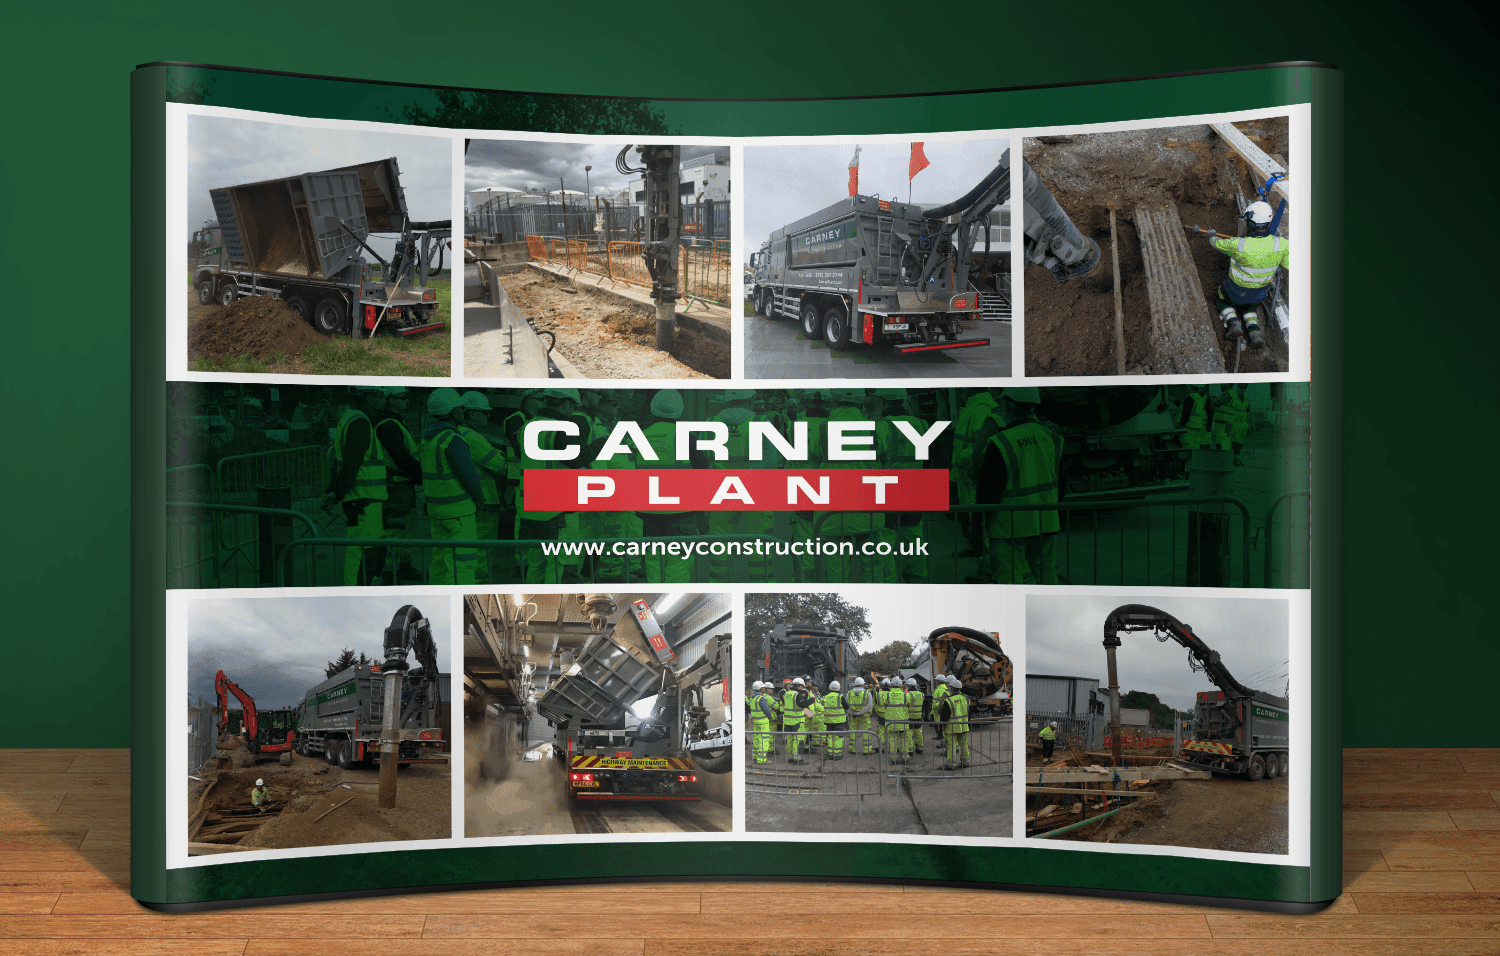 Carney Plant exhibition stand 2